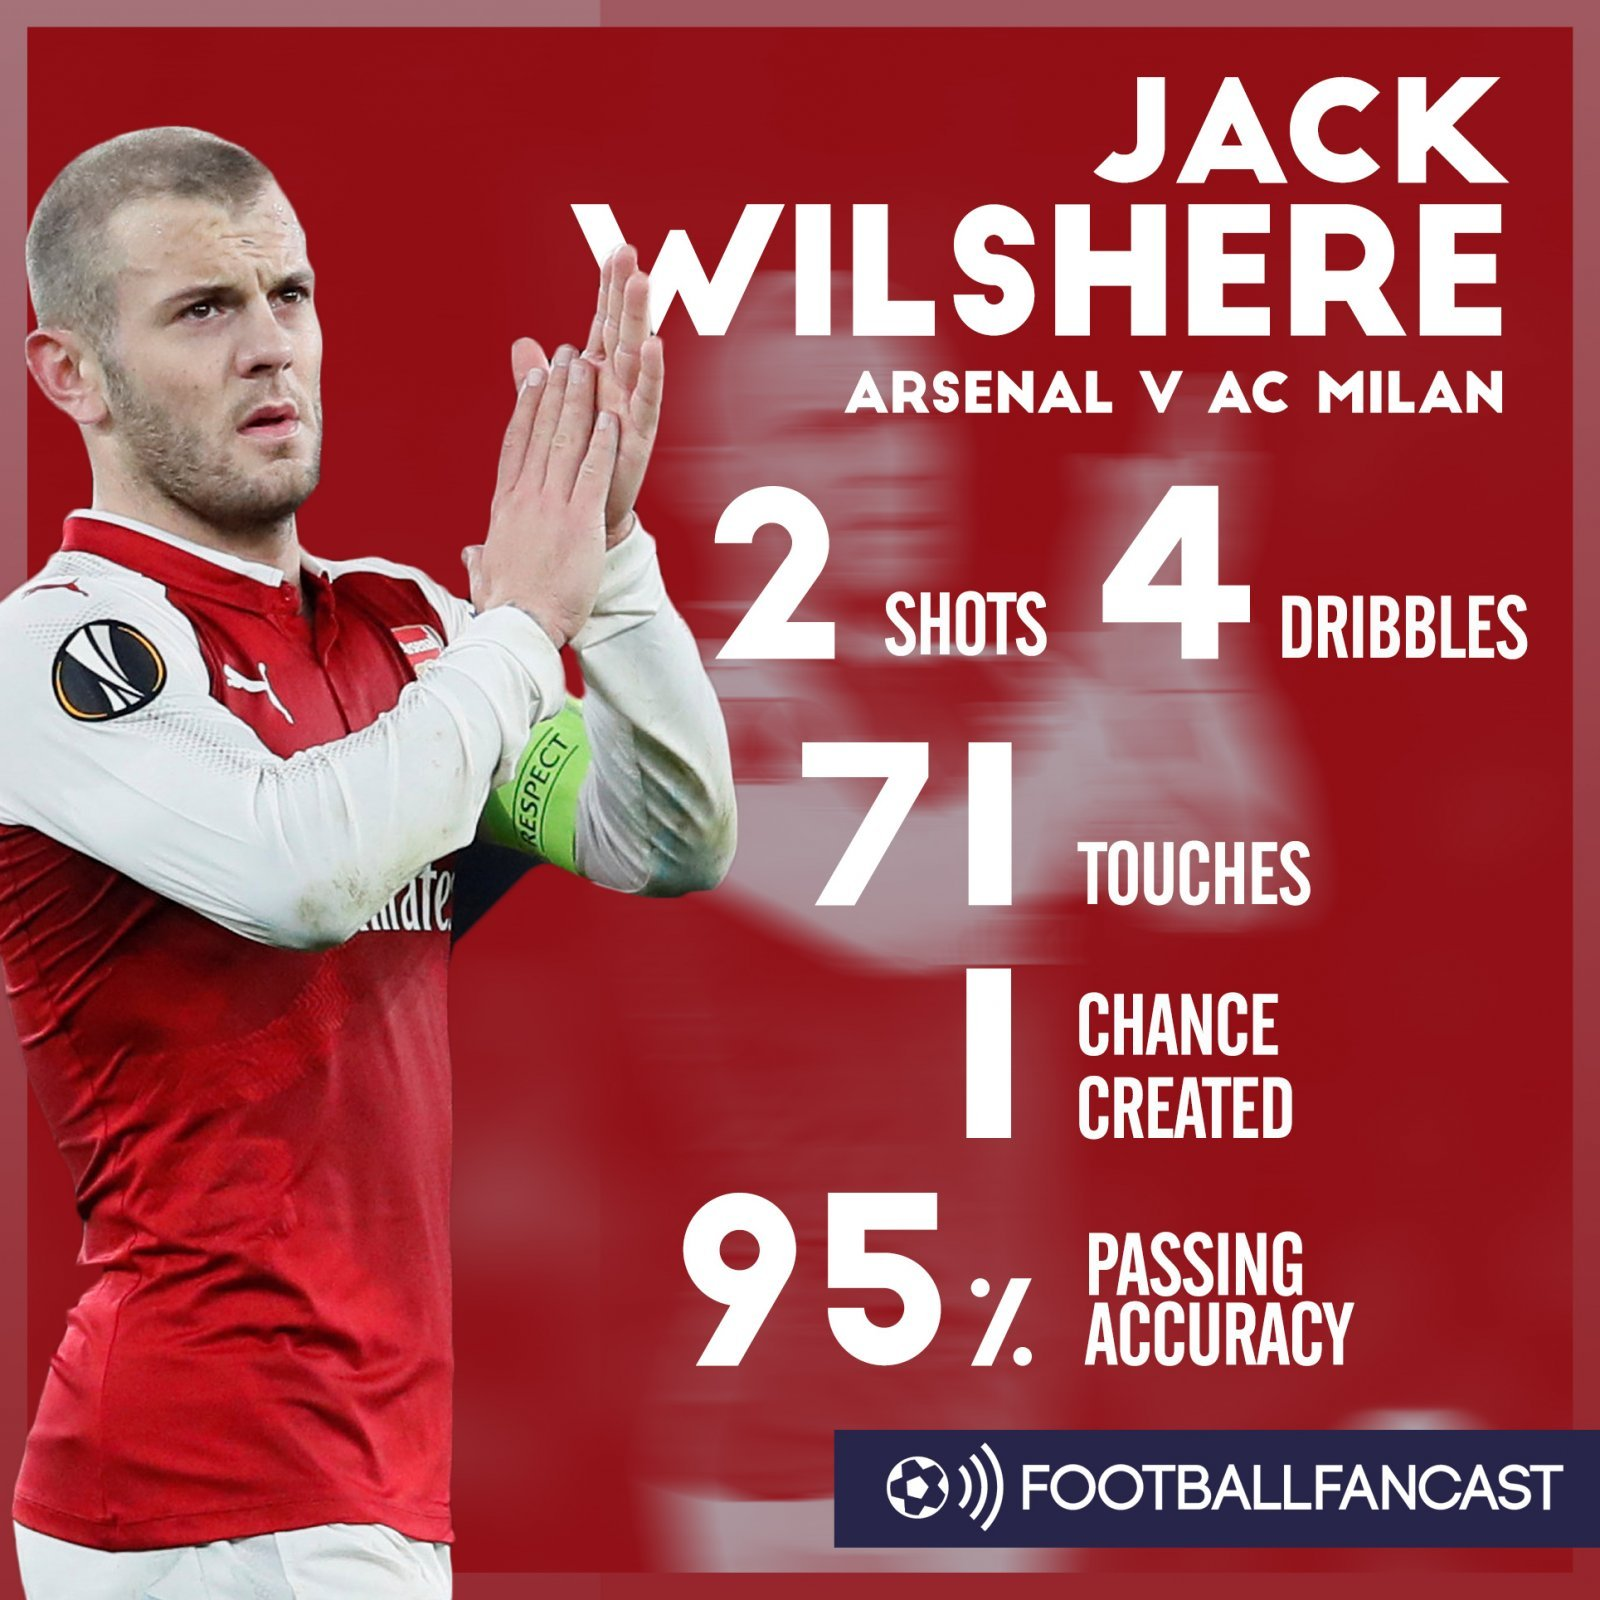 Jack Wilshere's stats from Arsenal's 3-1 win over AC Milan